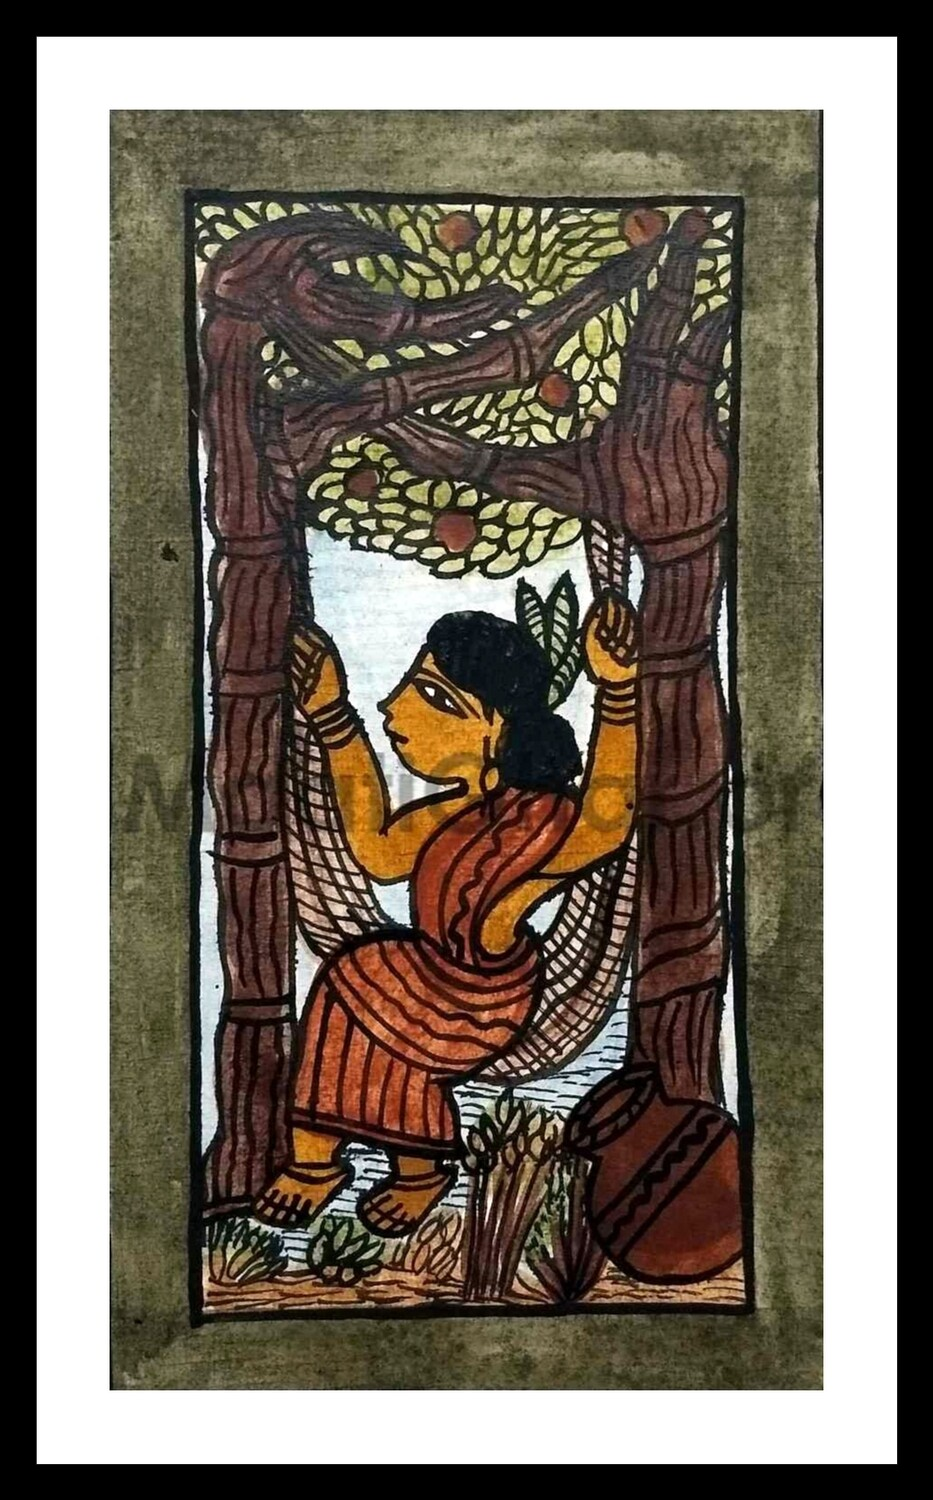 Paitkar Painting - Swinging in Nature (10x6 in)